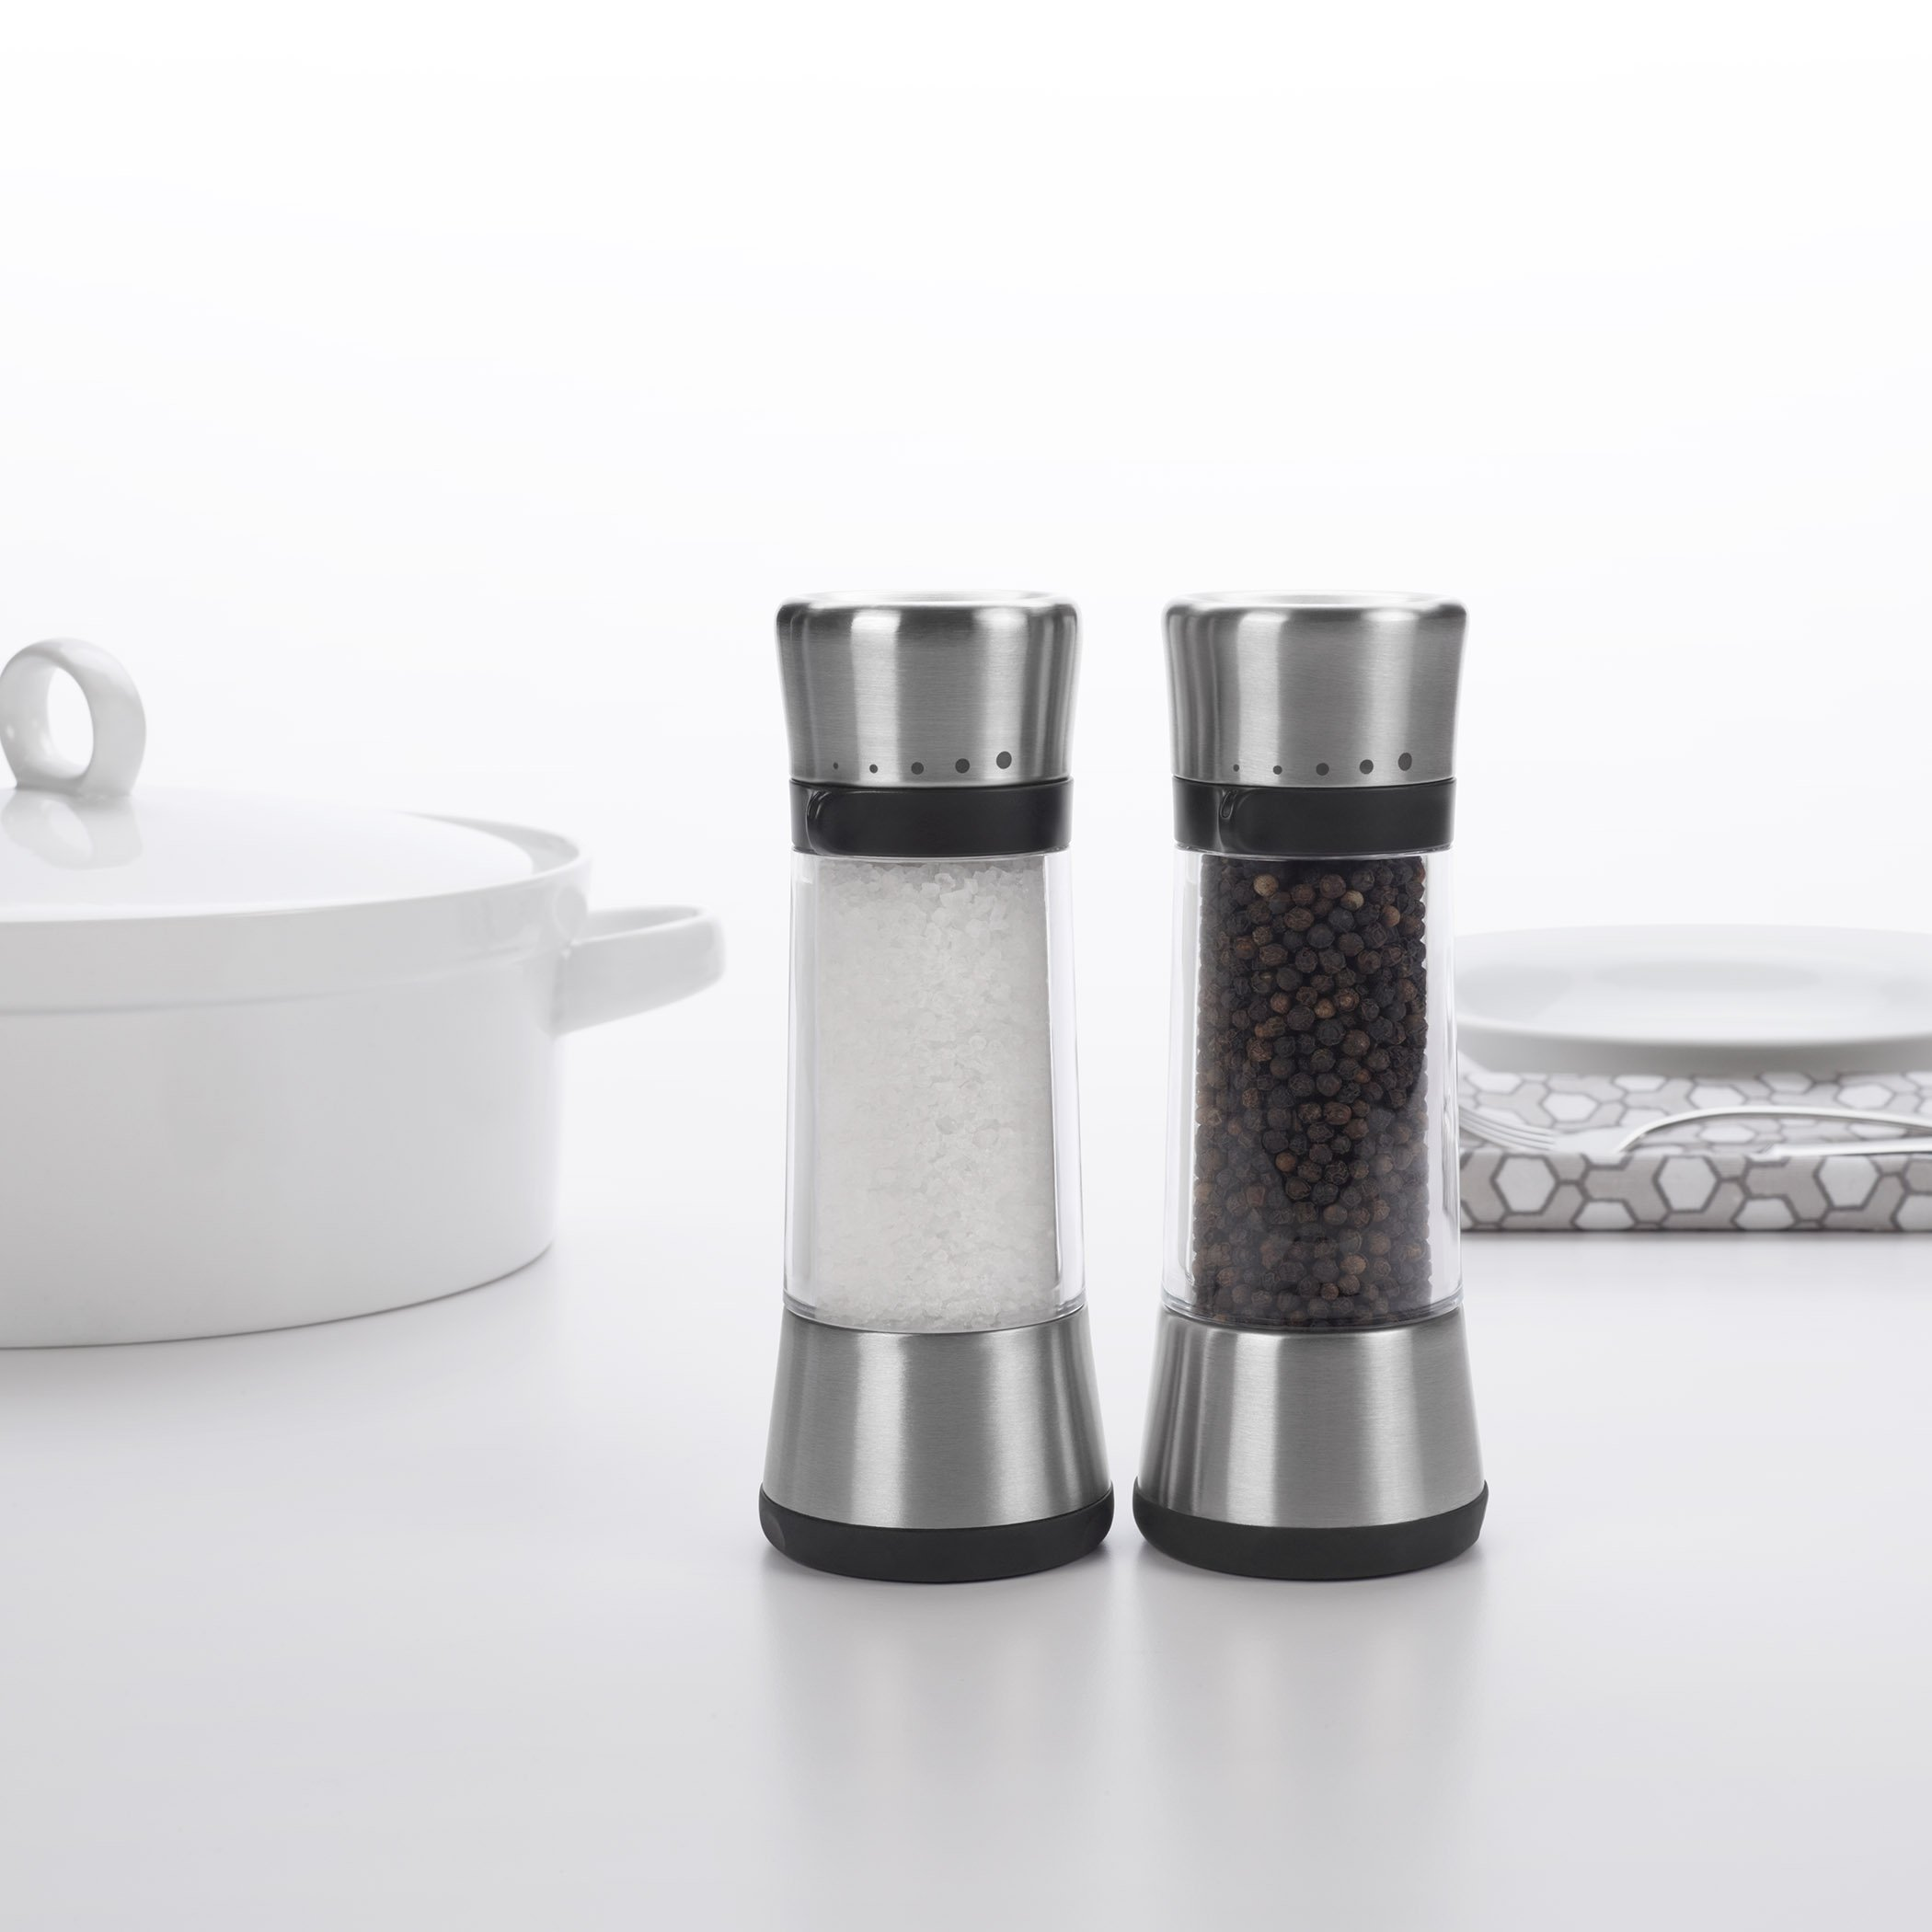 OXO Good Grips Lua Salt Mill with Adjustable Grind Size by OXO (Image #6)